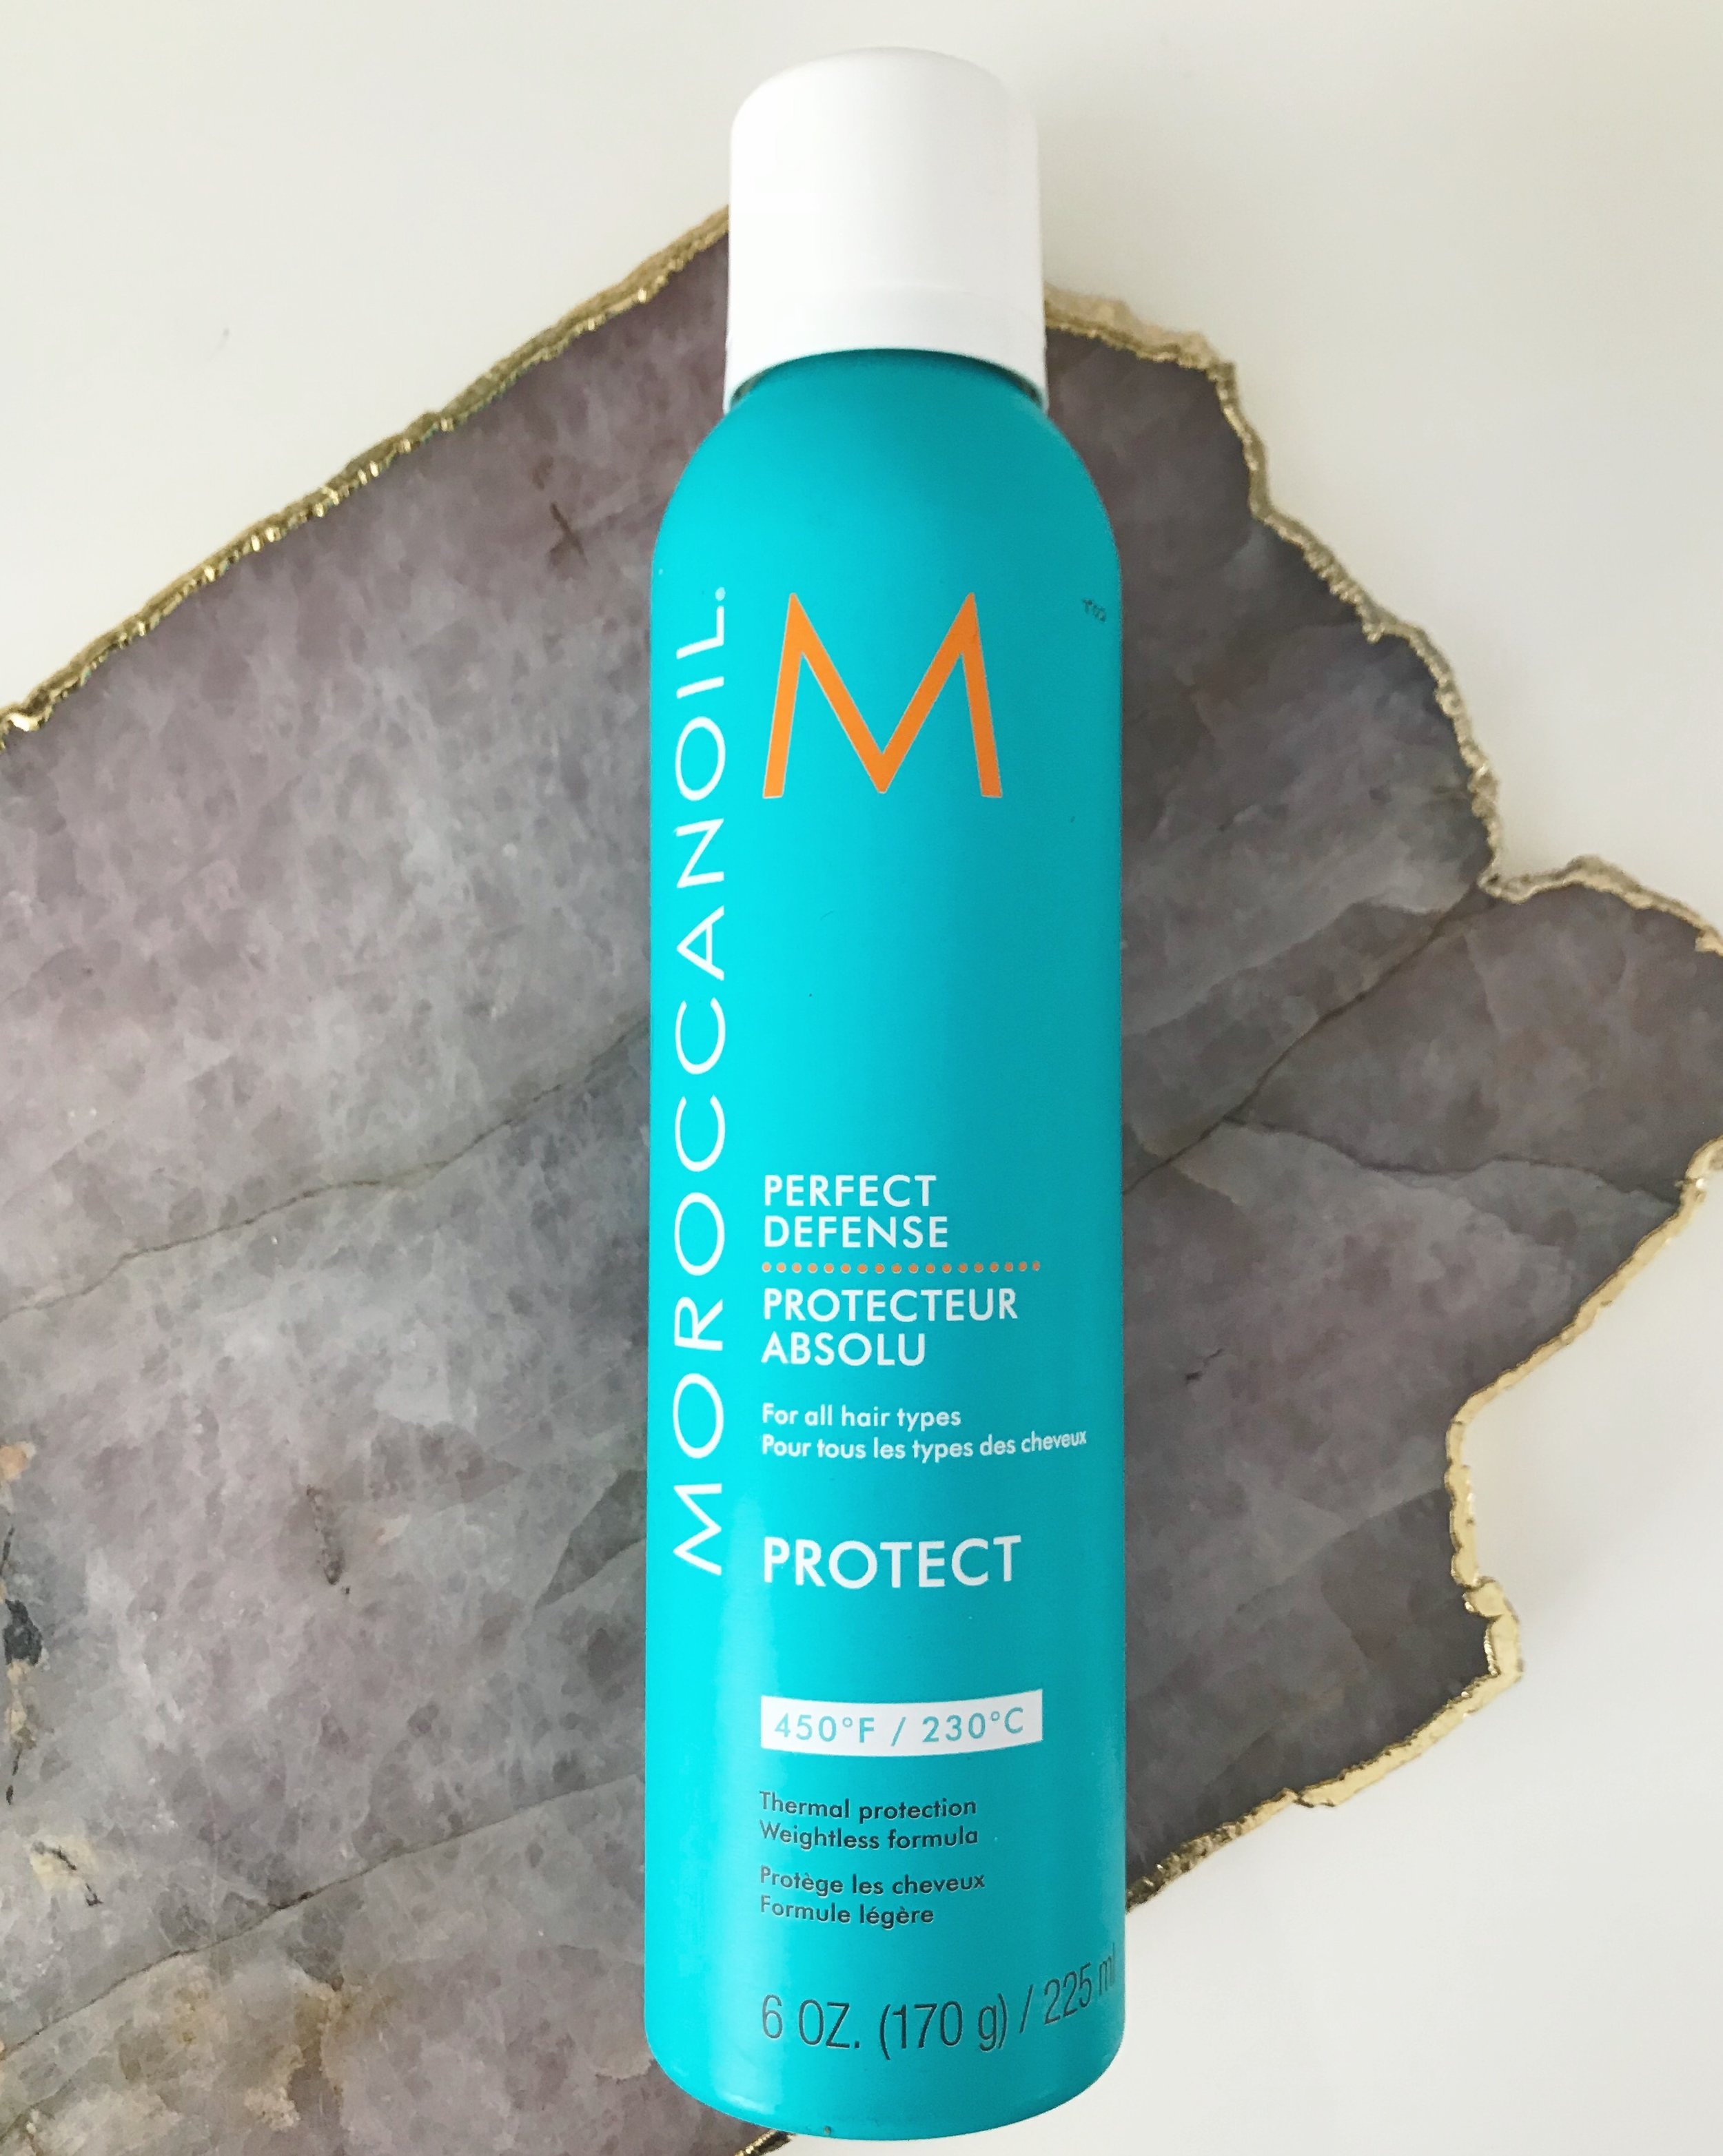 Moroccanoil Discount Code - If you're interested in trying a Moroccanoil product or need to stock up, there will be 10% off ALL Moroccanoil Products @ The Pure Hair Salon, Lightwater, running from Wednesday 25th April until 5pm on Saturday 28th April. Please quote 'LAURABELLHAIR' to receive your 10% discount.